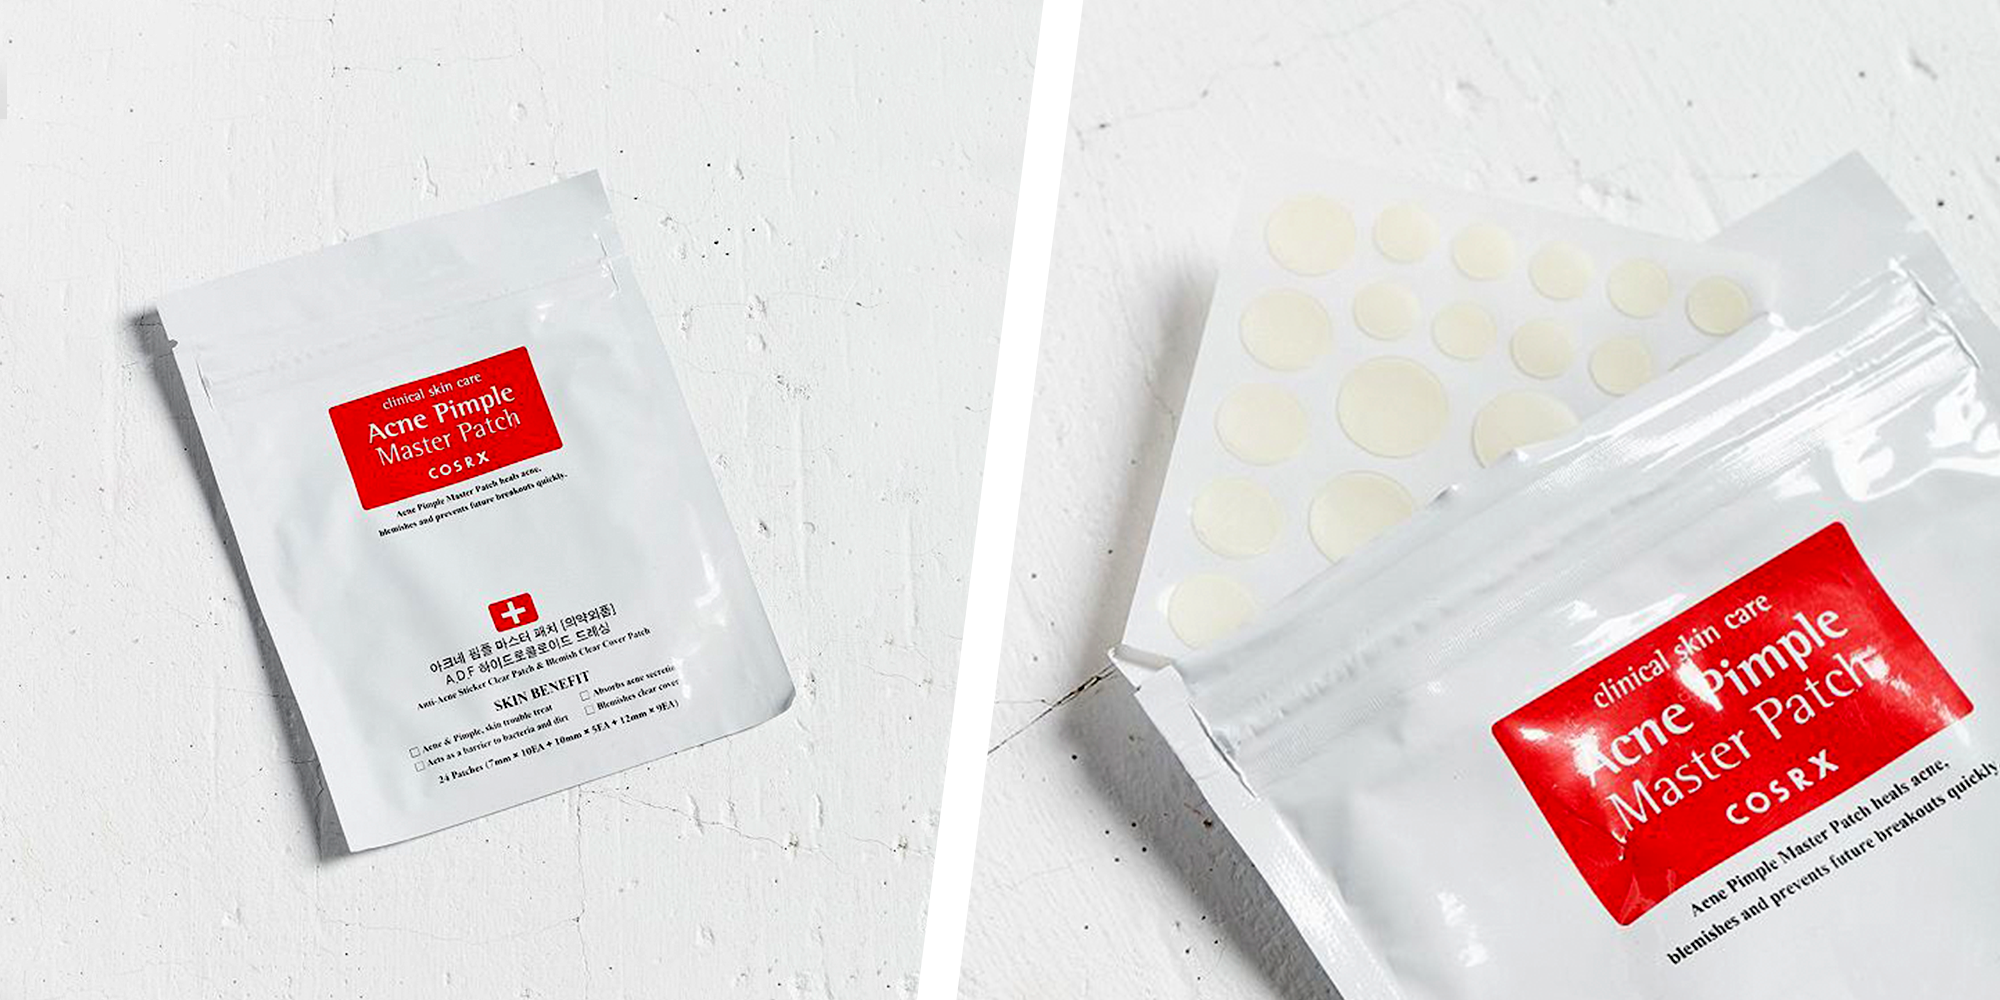 5 Acne Patches That Will Get Rid of Your Pimples Overnight